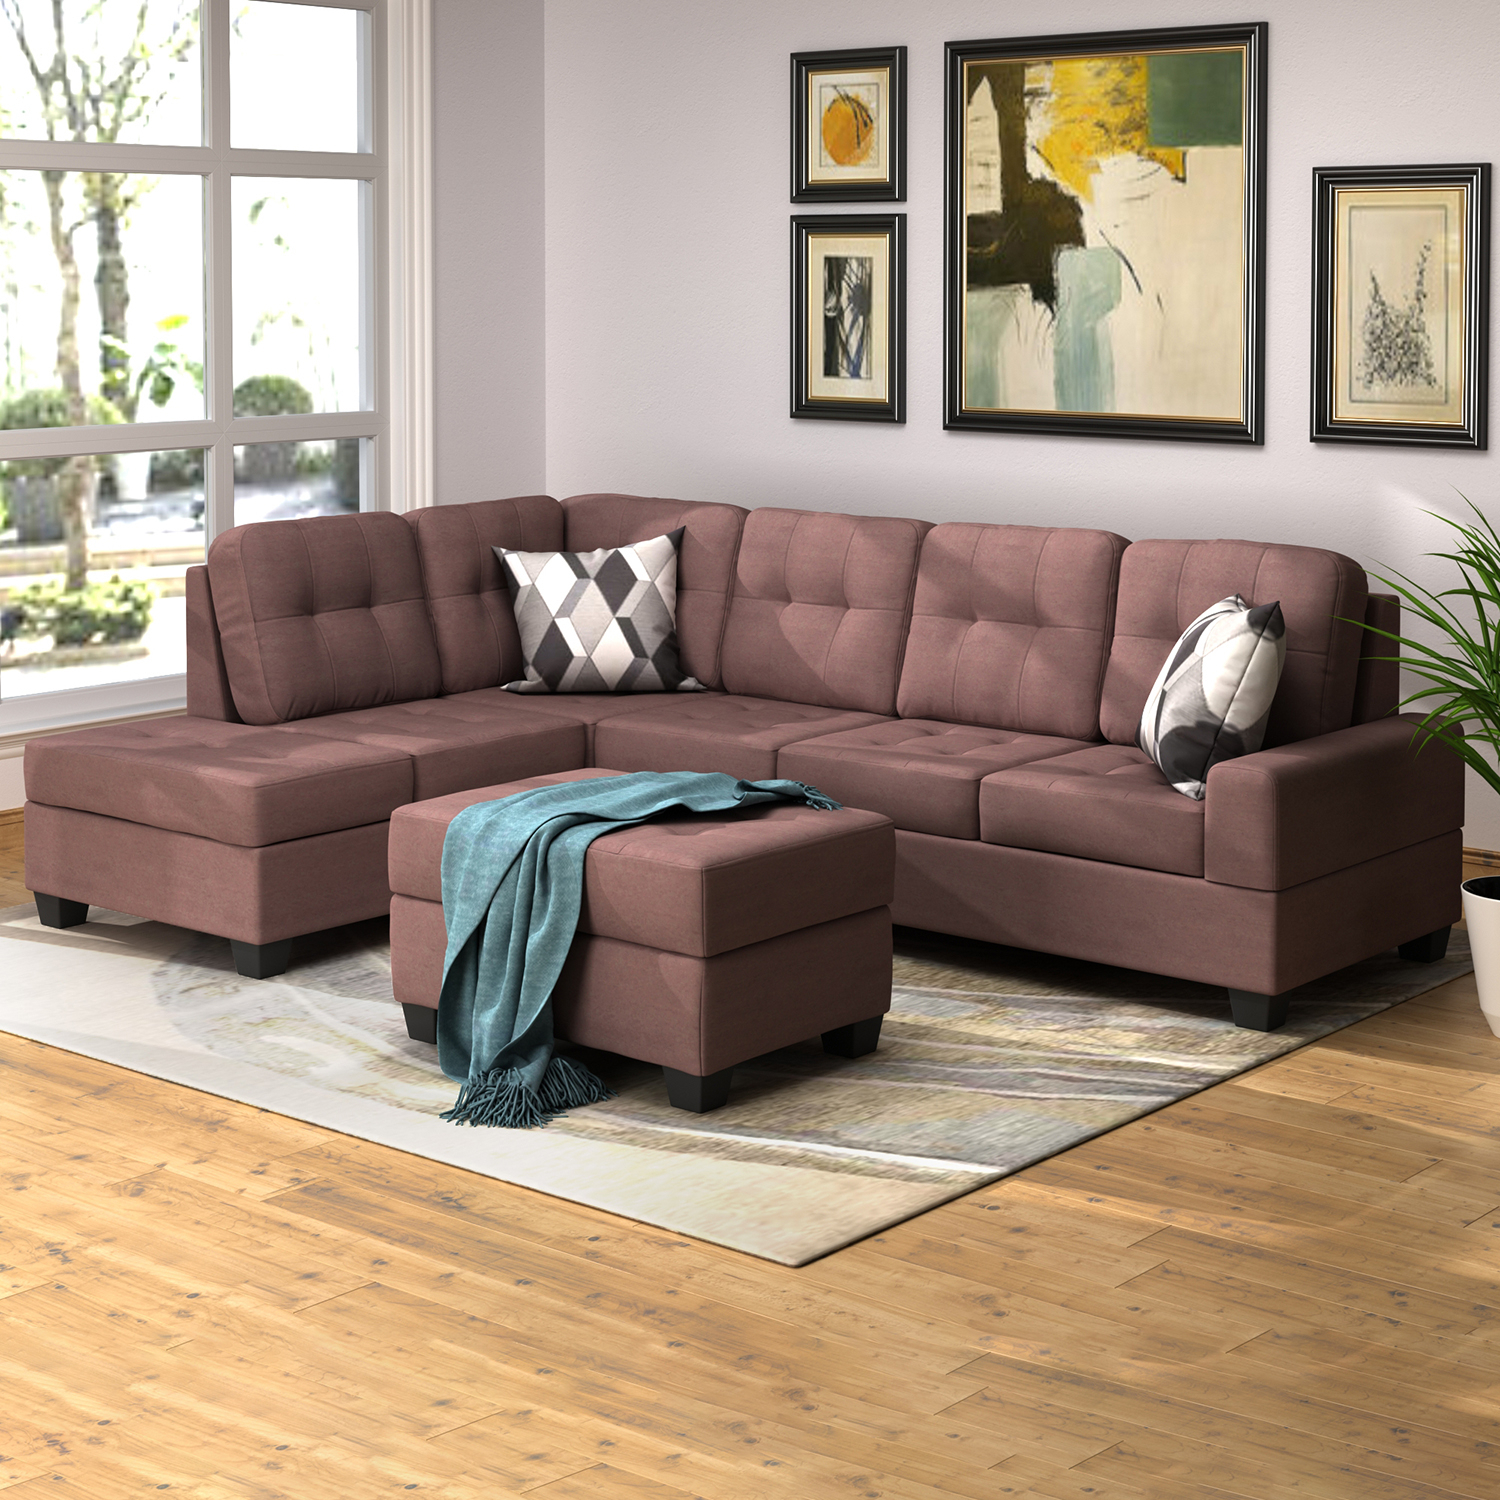 3 Piece Sectional Sofa Microfiber With Reversible Chaise Intended For Copenhagen Reversible Small Space Sectional Sofas With Storage (View 4 of 15)